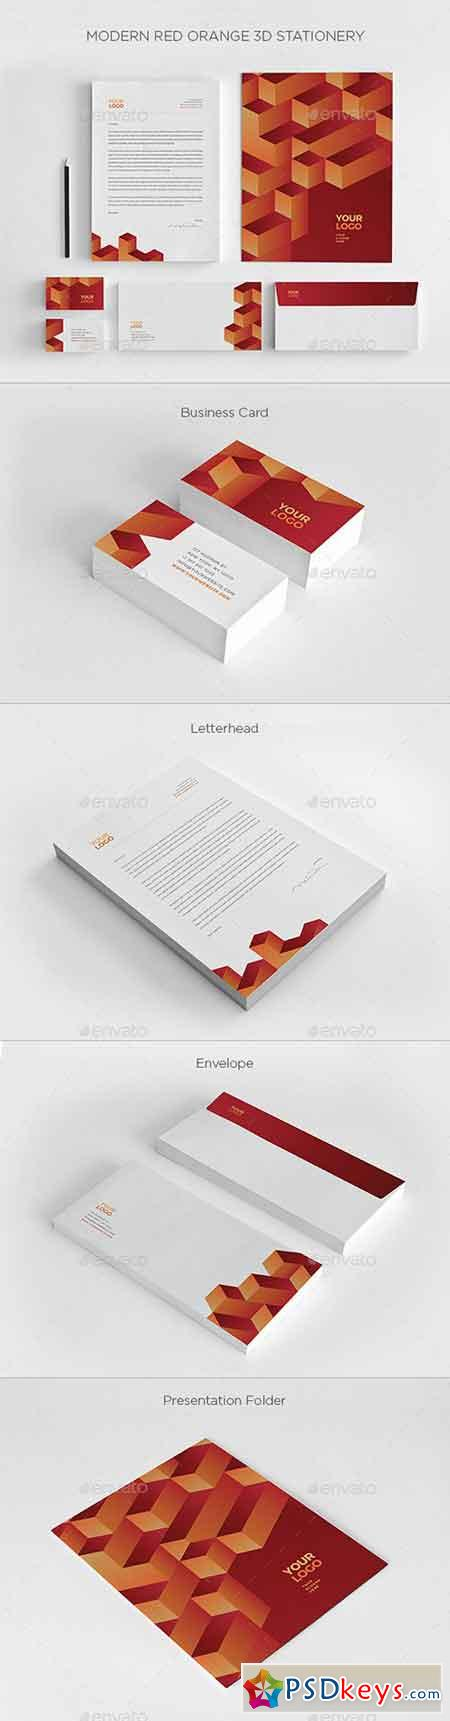 Modern Red Orange 3D Stationery 20279000